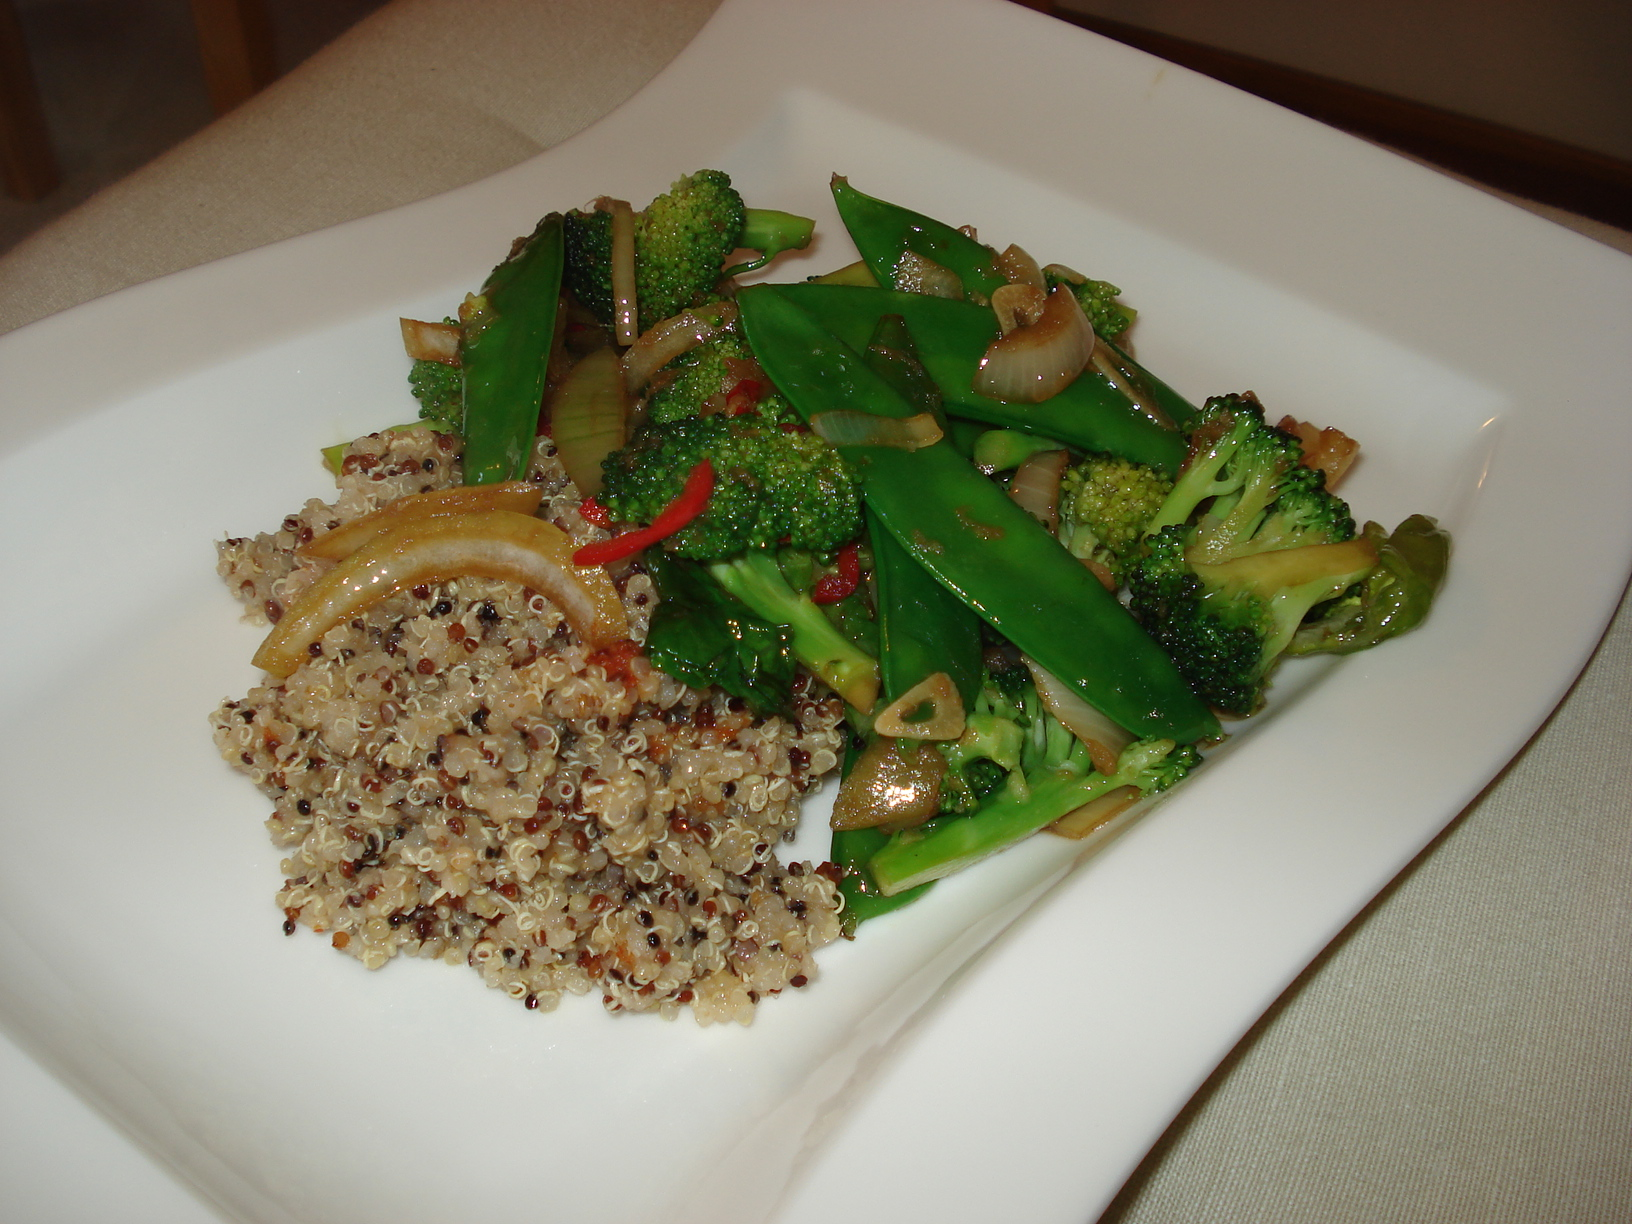 Chilli and sesame flavoured vegetable wok with quinoa